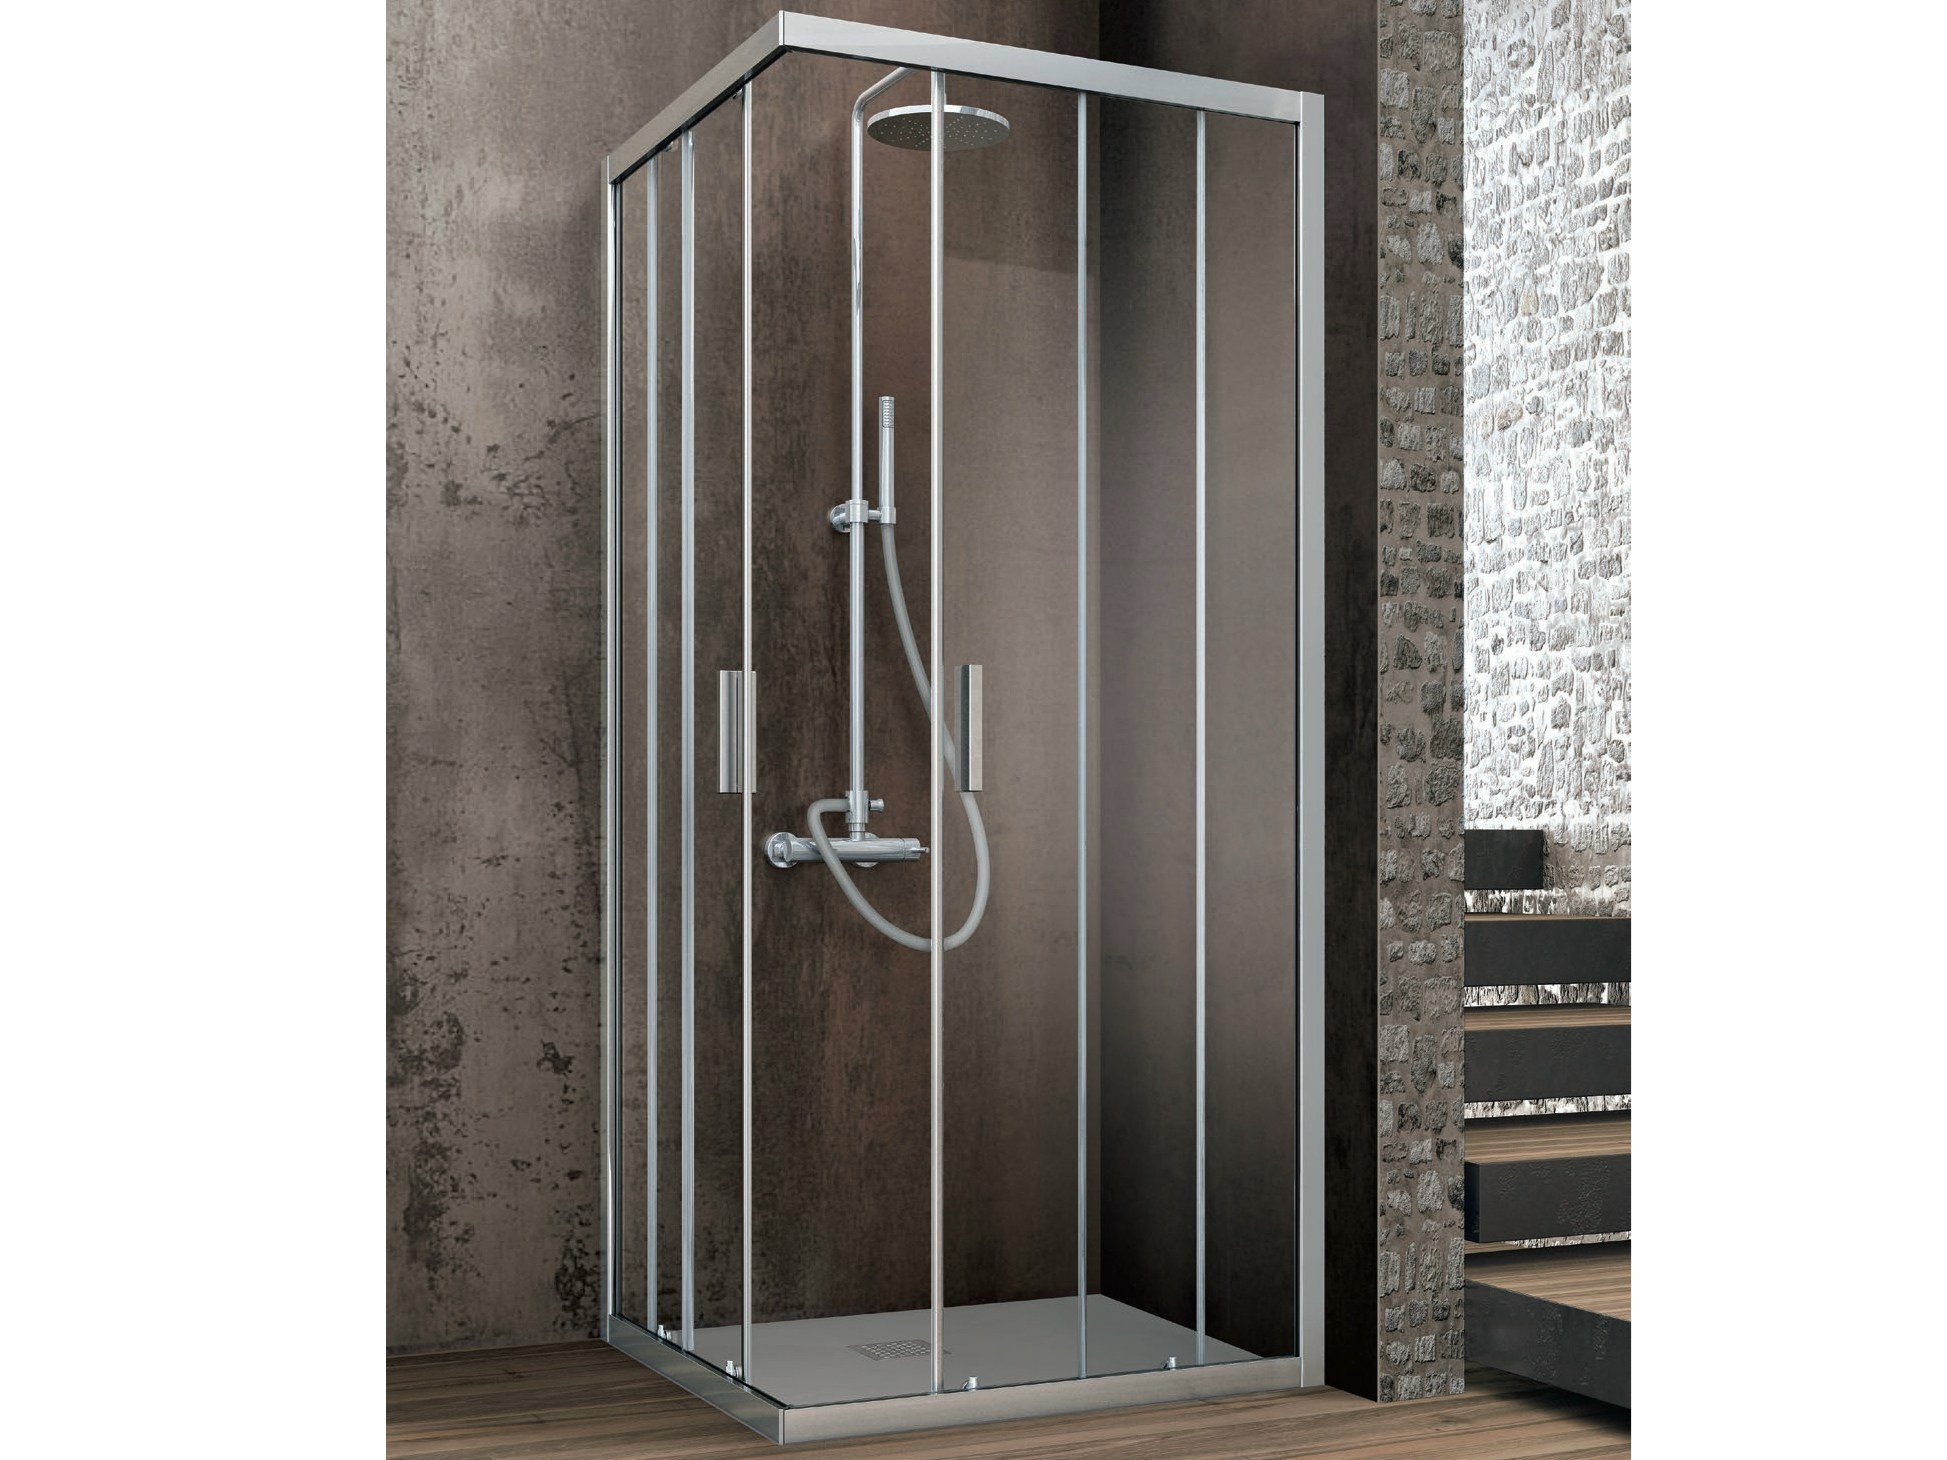 cabine de douche d 39 angle rectangulaire en cristal portes coulissantes aster t cabine de. Black Bedroom Furniture Sets. Home Design Ideas